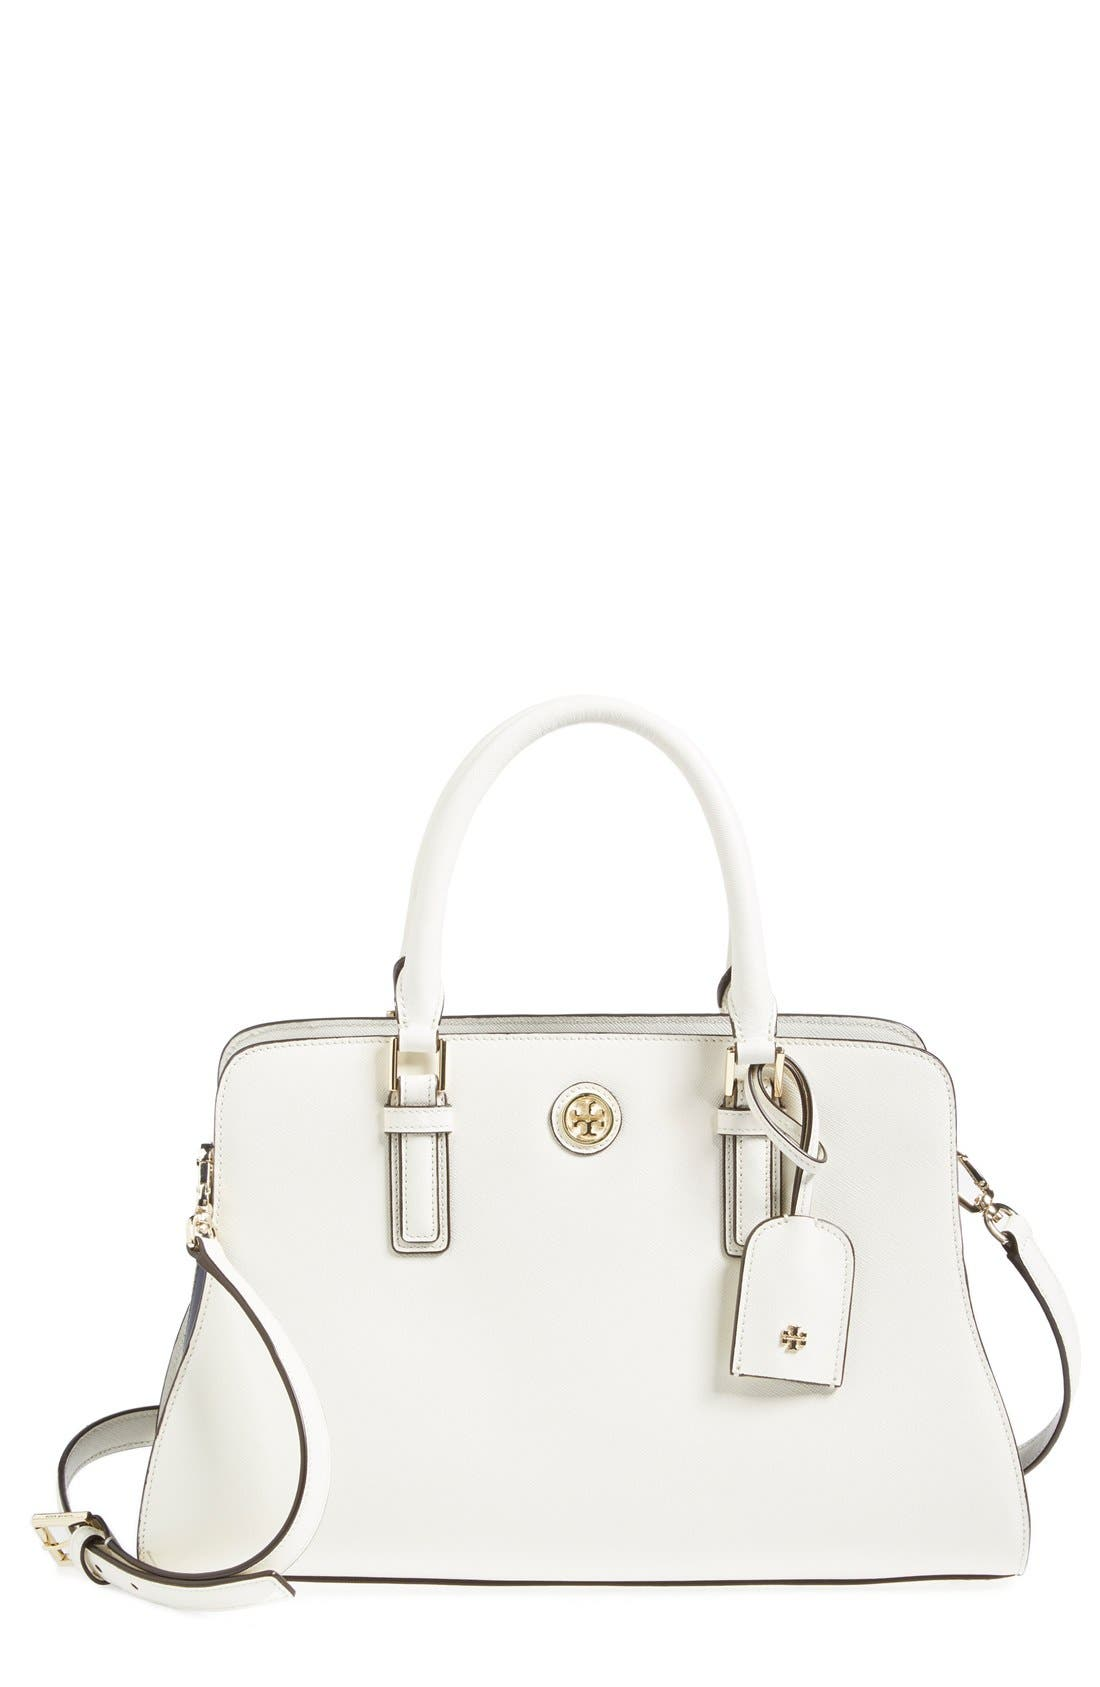 Main Image - Tory Burch 'Robinson - Curved' Leather Satchel